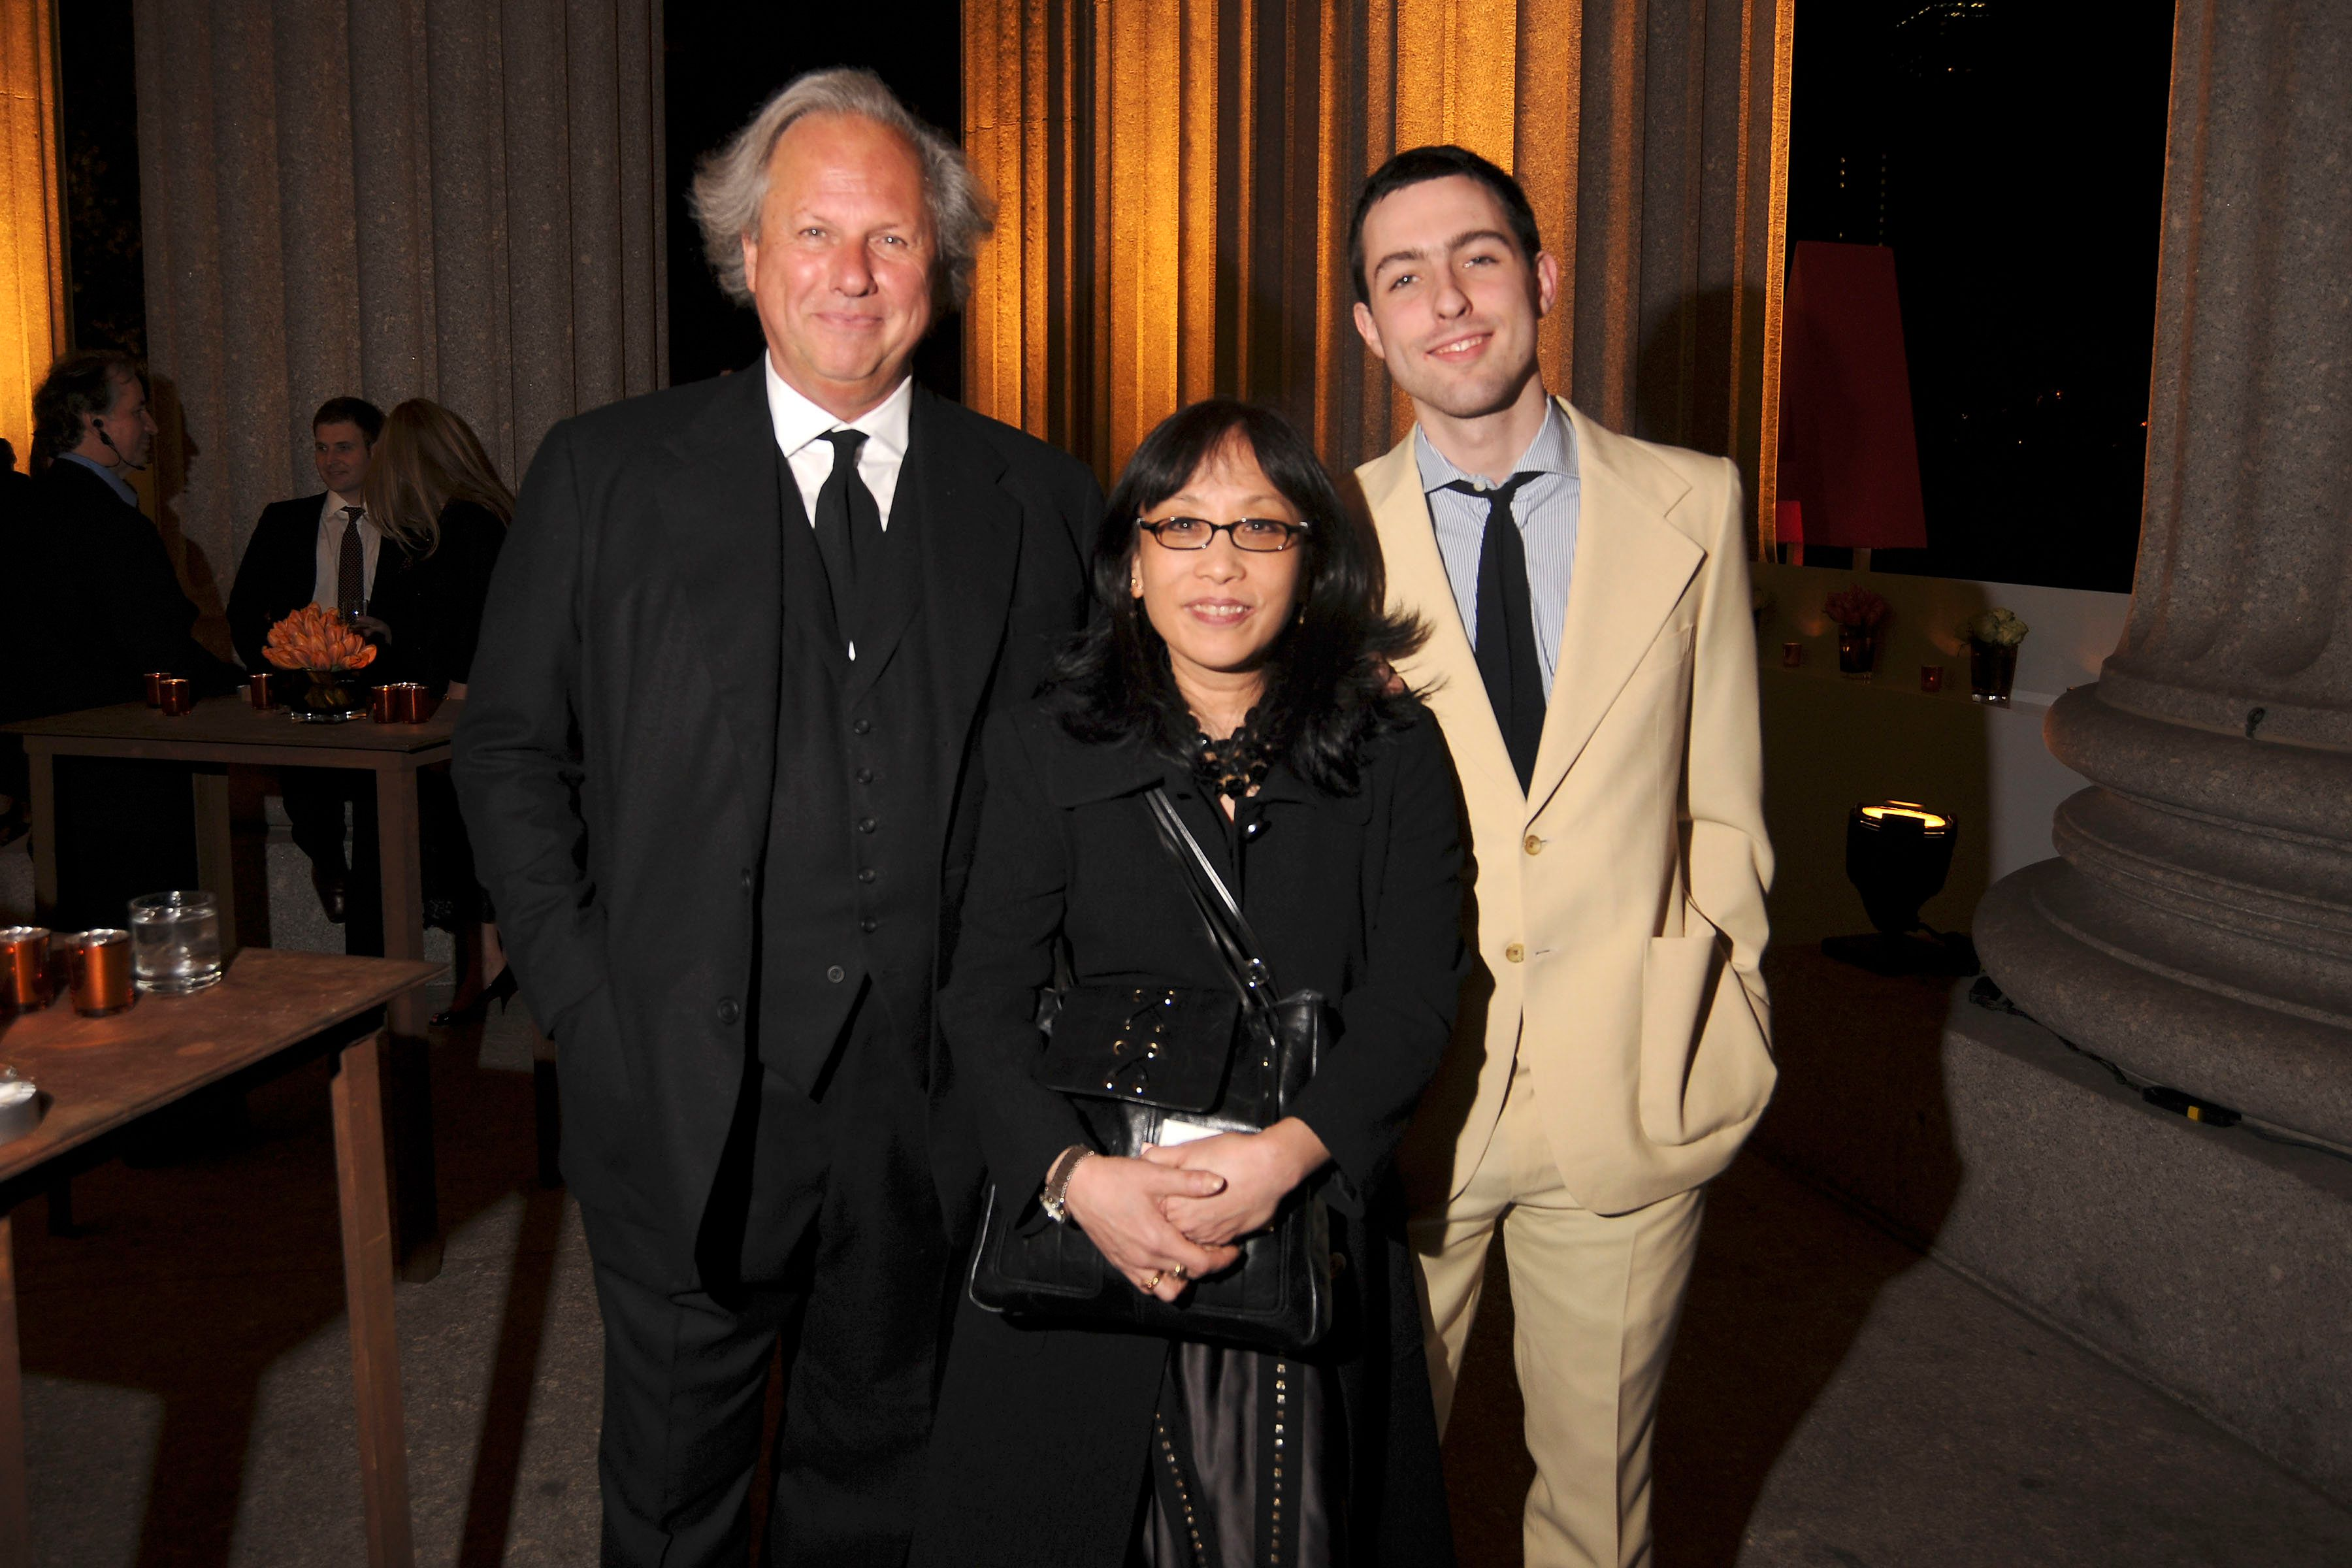 NEW YORK CITY, NY - APRIL 22: (L-R) Graydon Carter, Michiko Kakutani and Ash Carter attend VANITY FAIR & Tribeca Film Festival Party hosted by GRAYDON CARTER, ROBERT DE NIRO and RONALD PERELMAN at The State Supreme Courthouse on April 22, 2008 in New York City. (Photo by BILLY FARRELL/Patrick McMullan via Getty Images)